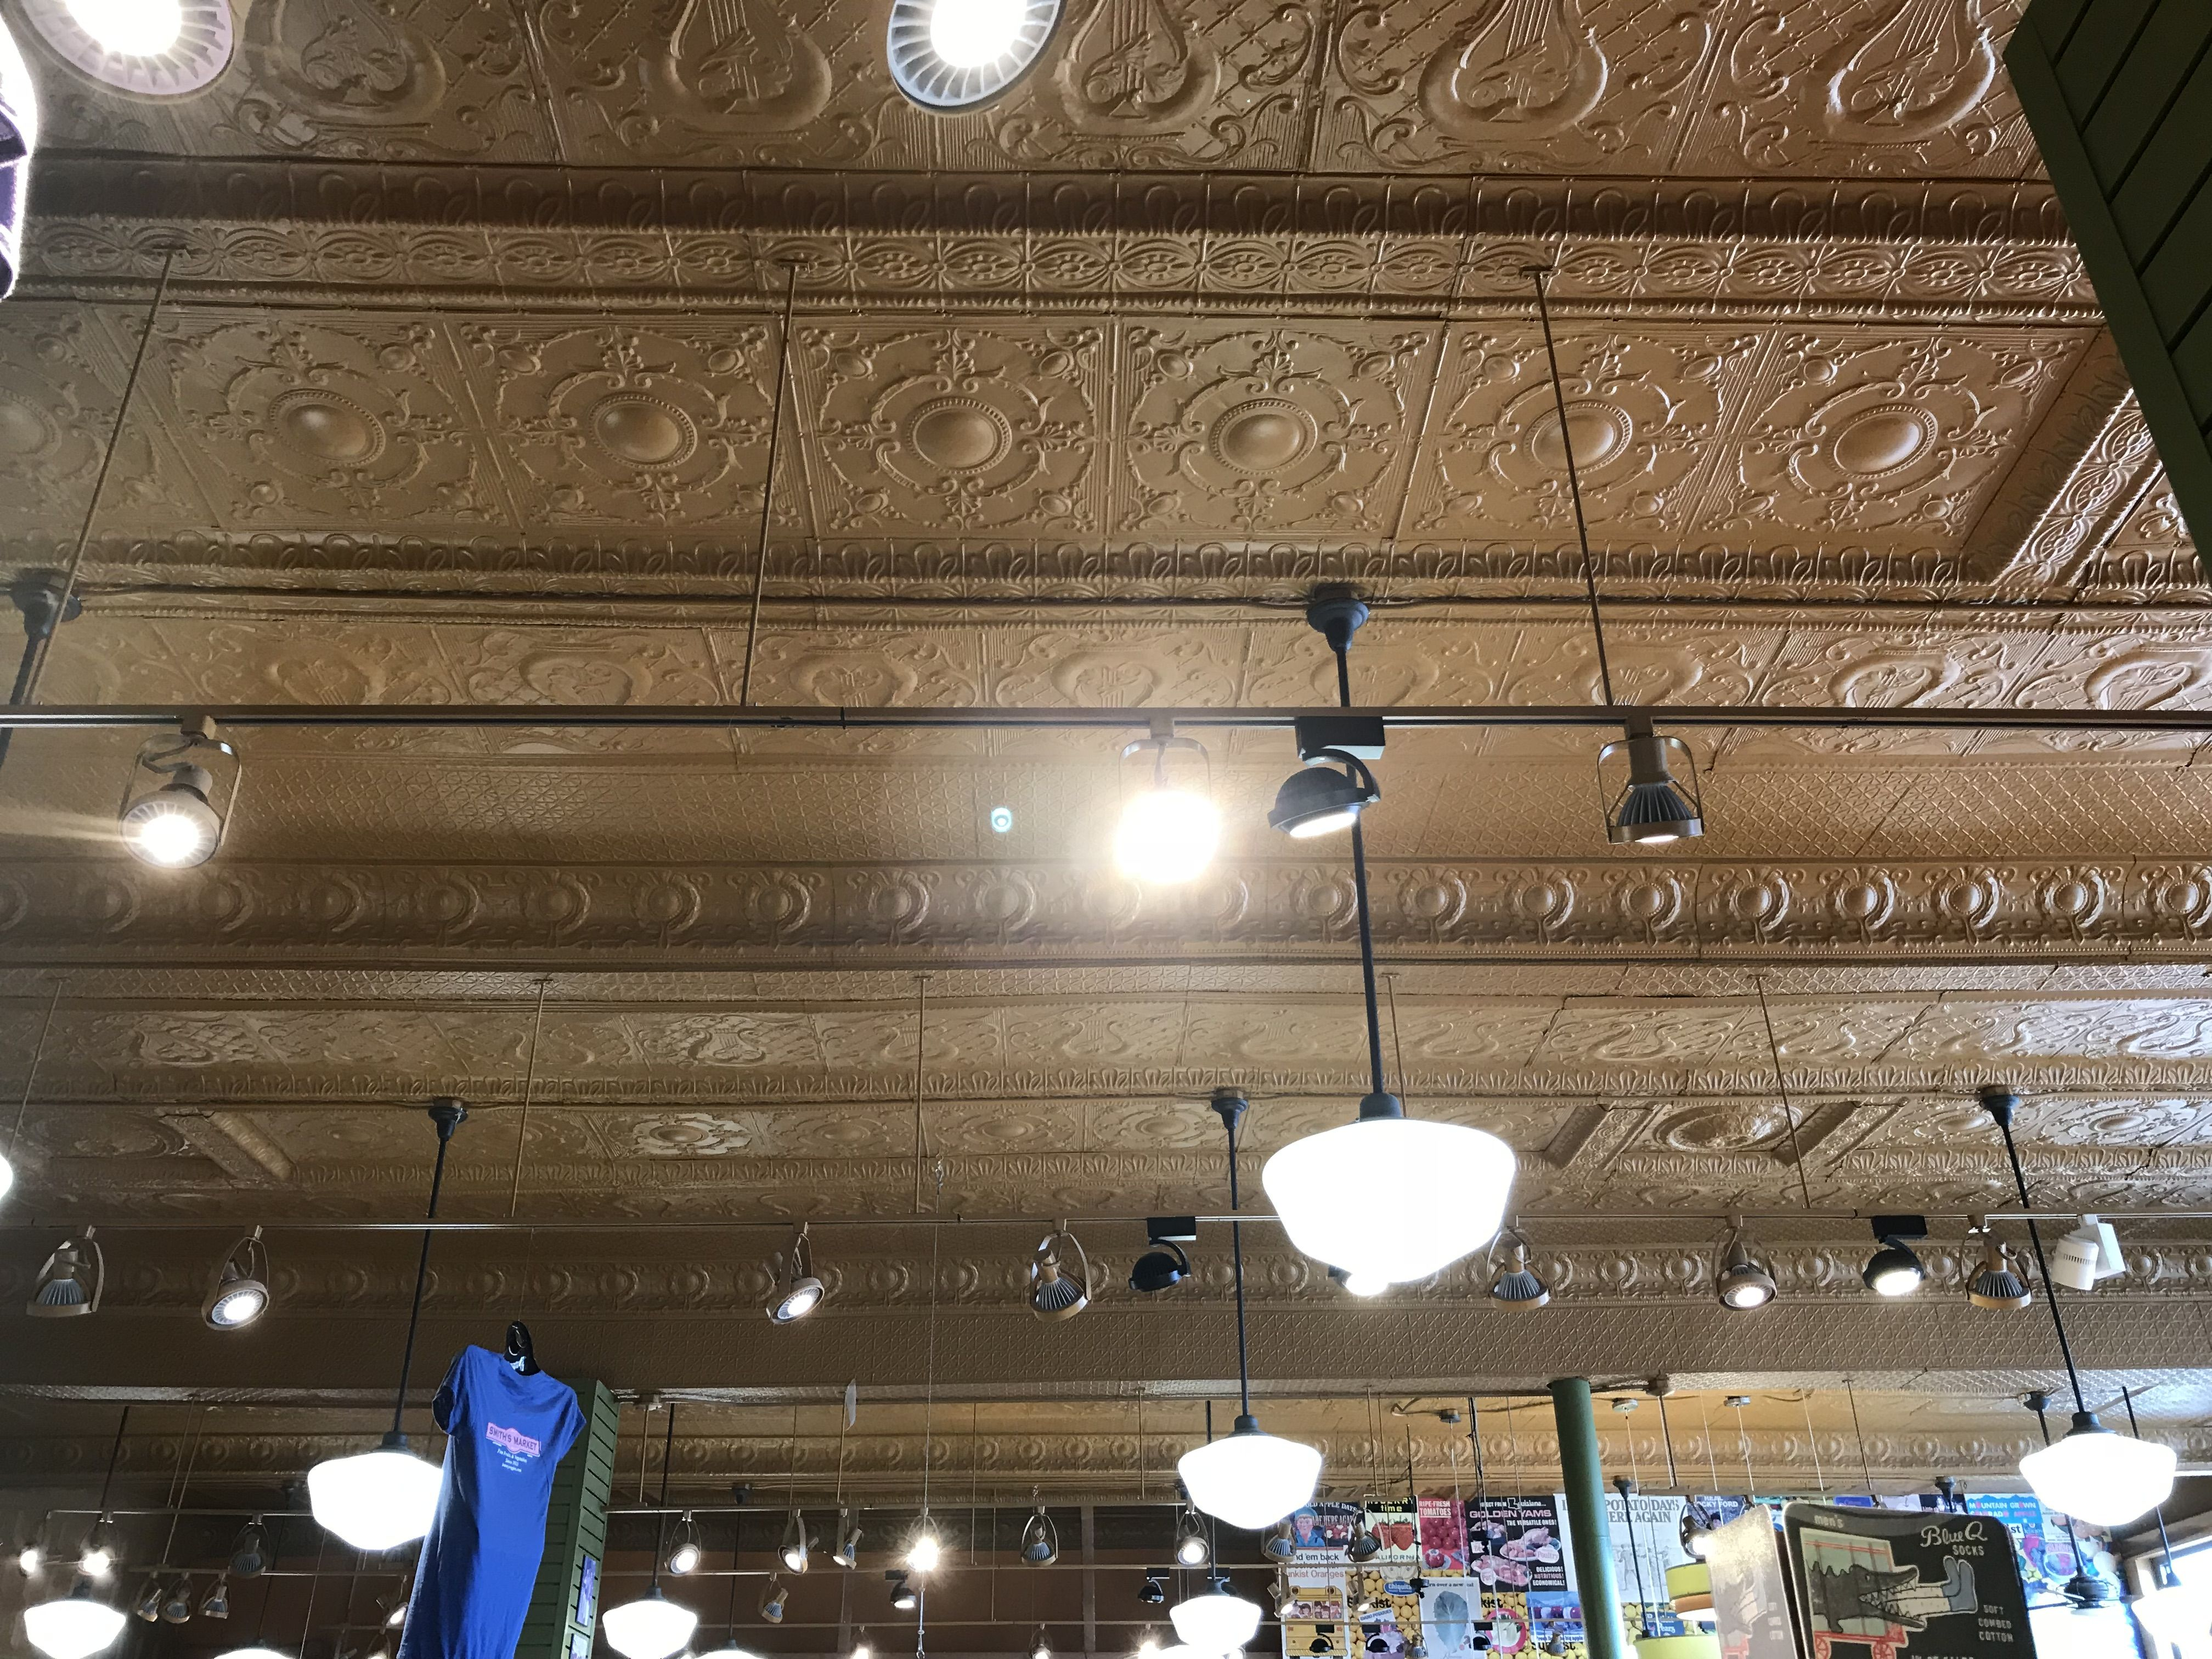 Smiths Market In Hutchinson Ks Combines Several Patterns On This